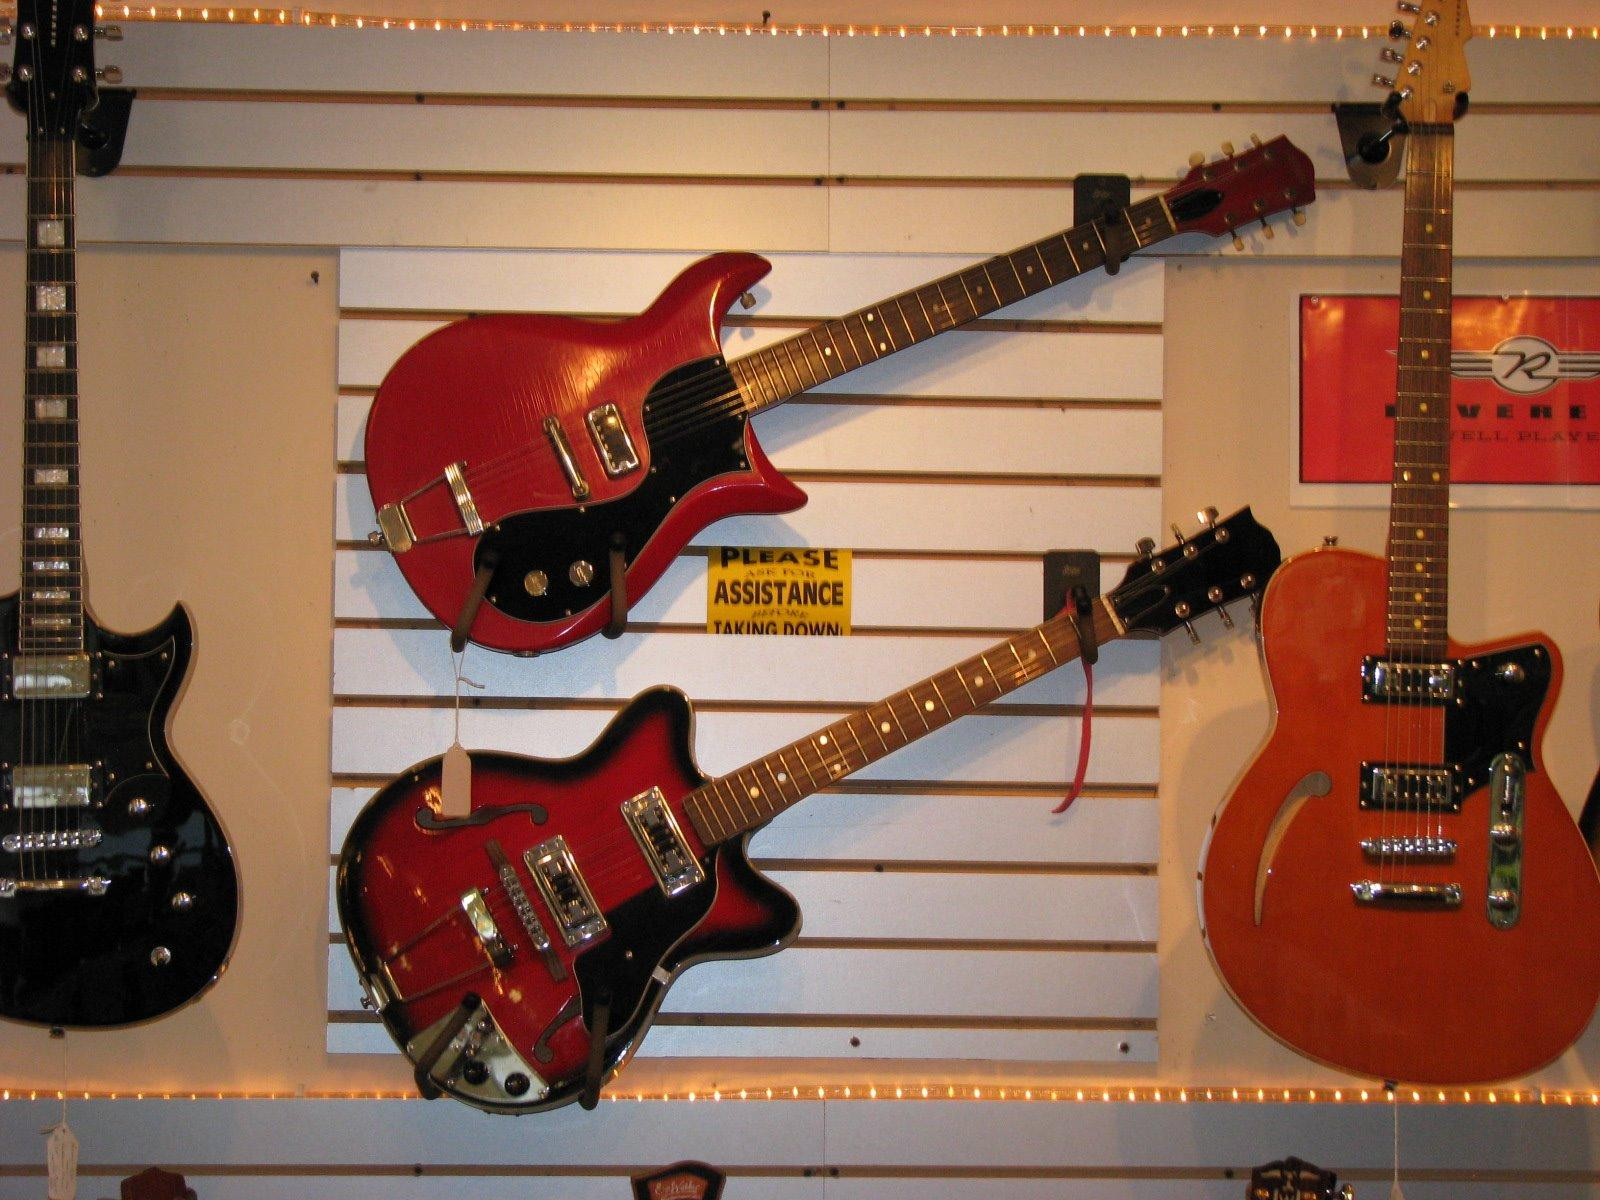 bear hollow vintage guitars in lebanon nh musical instruments yellow pages directory inc. Black Bedroom Furniture Sets. Home Design Ideas